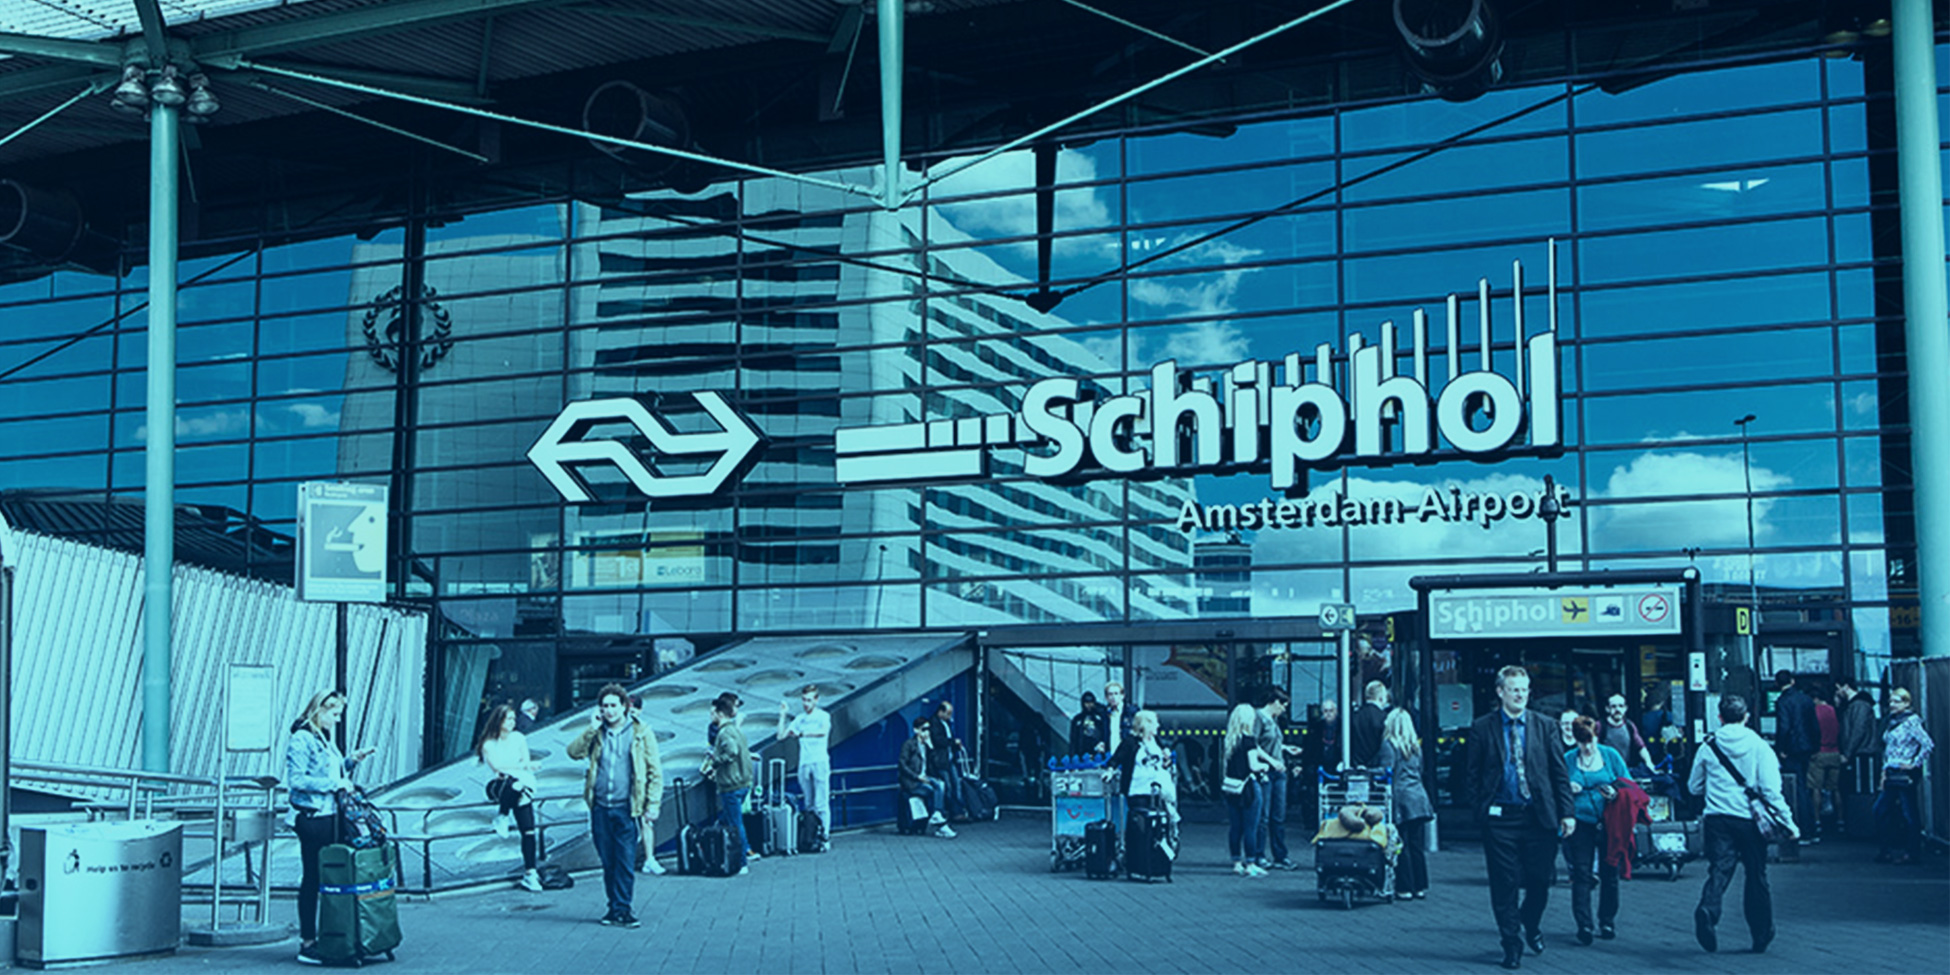 Amsterdam Airport Schiphol - Keeping Passengers Moving with Veovo